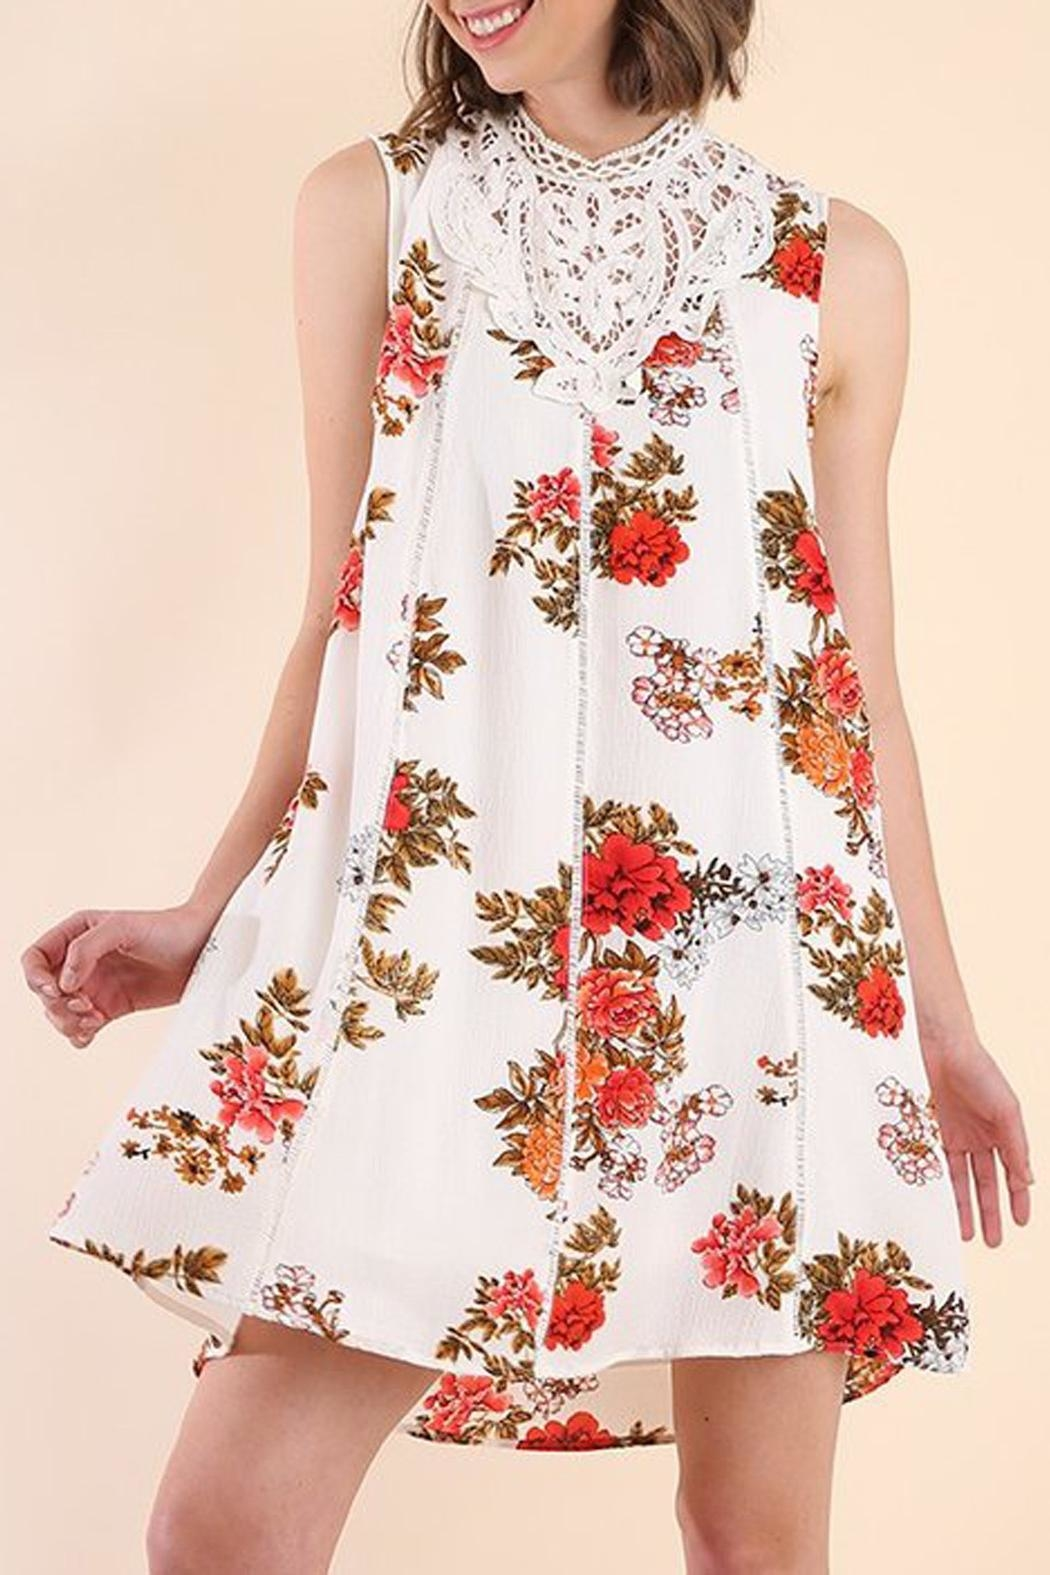 Umgee usa white floral print dress from california by harvey girls umgee usa white floral print dress front cropped image mightylinksfo